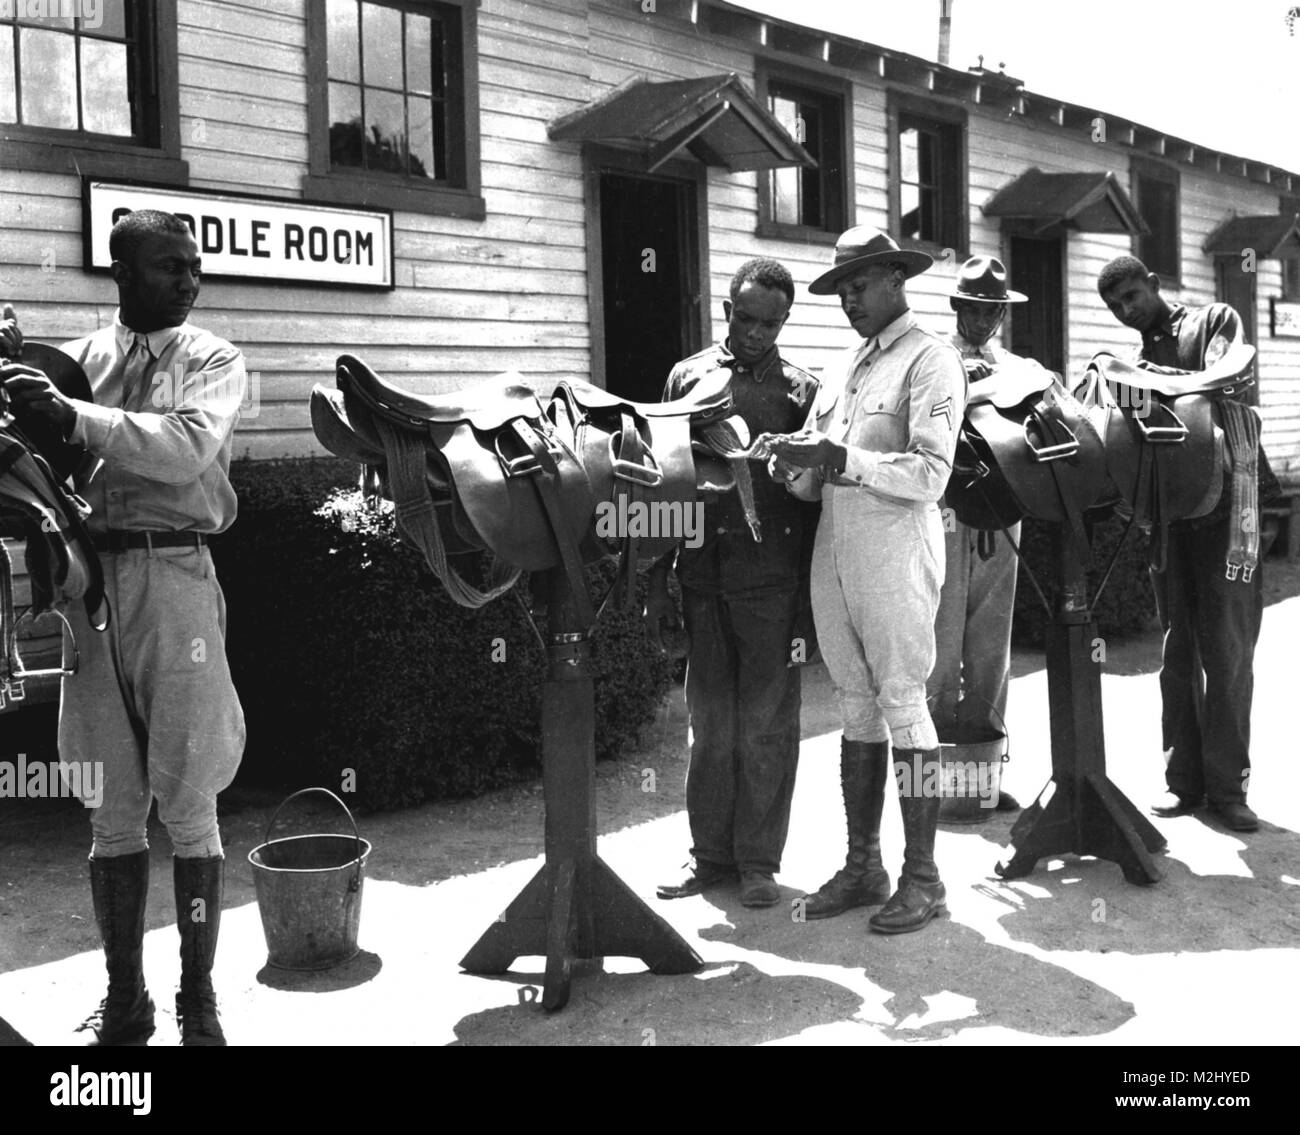 Buffalo Soldiers, Infantry School Stables, 1941 - Stock Image